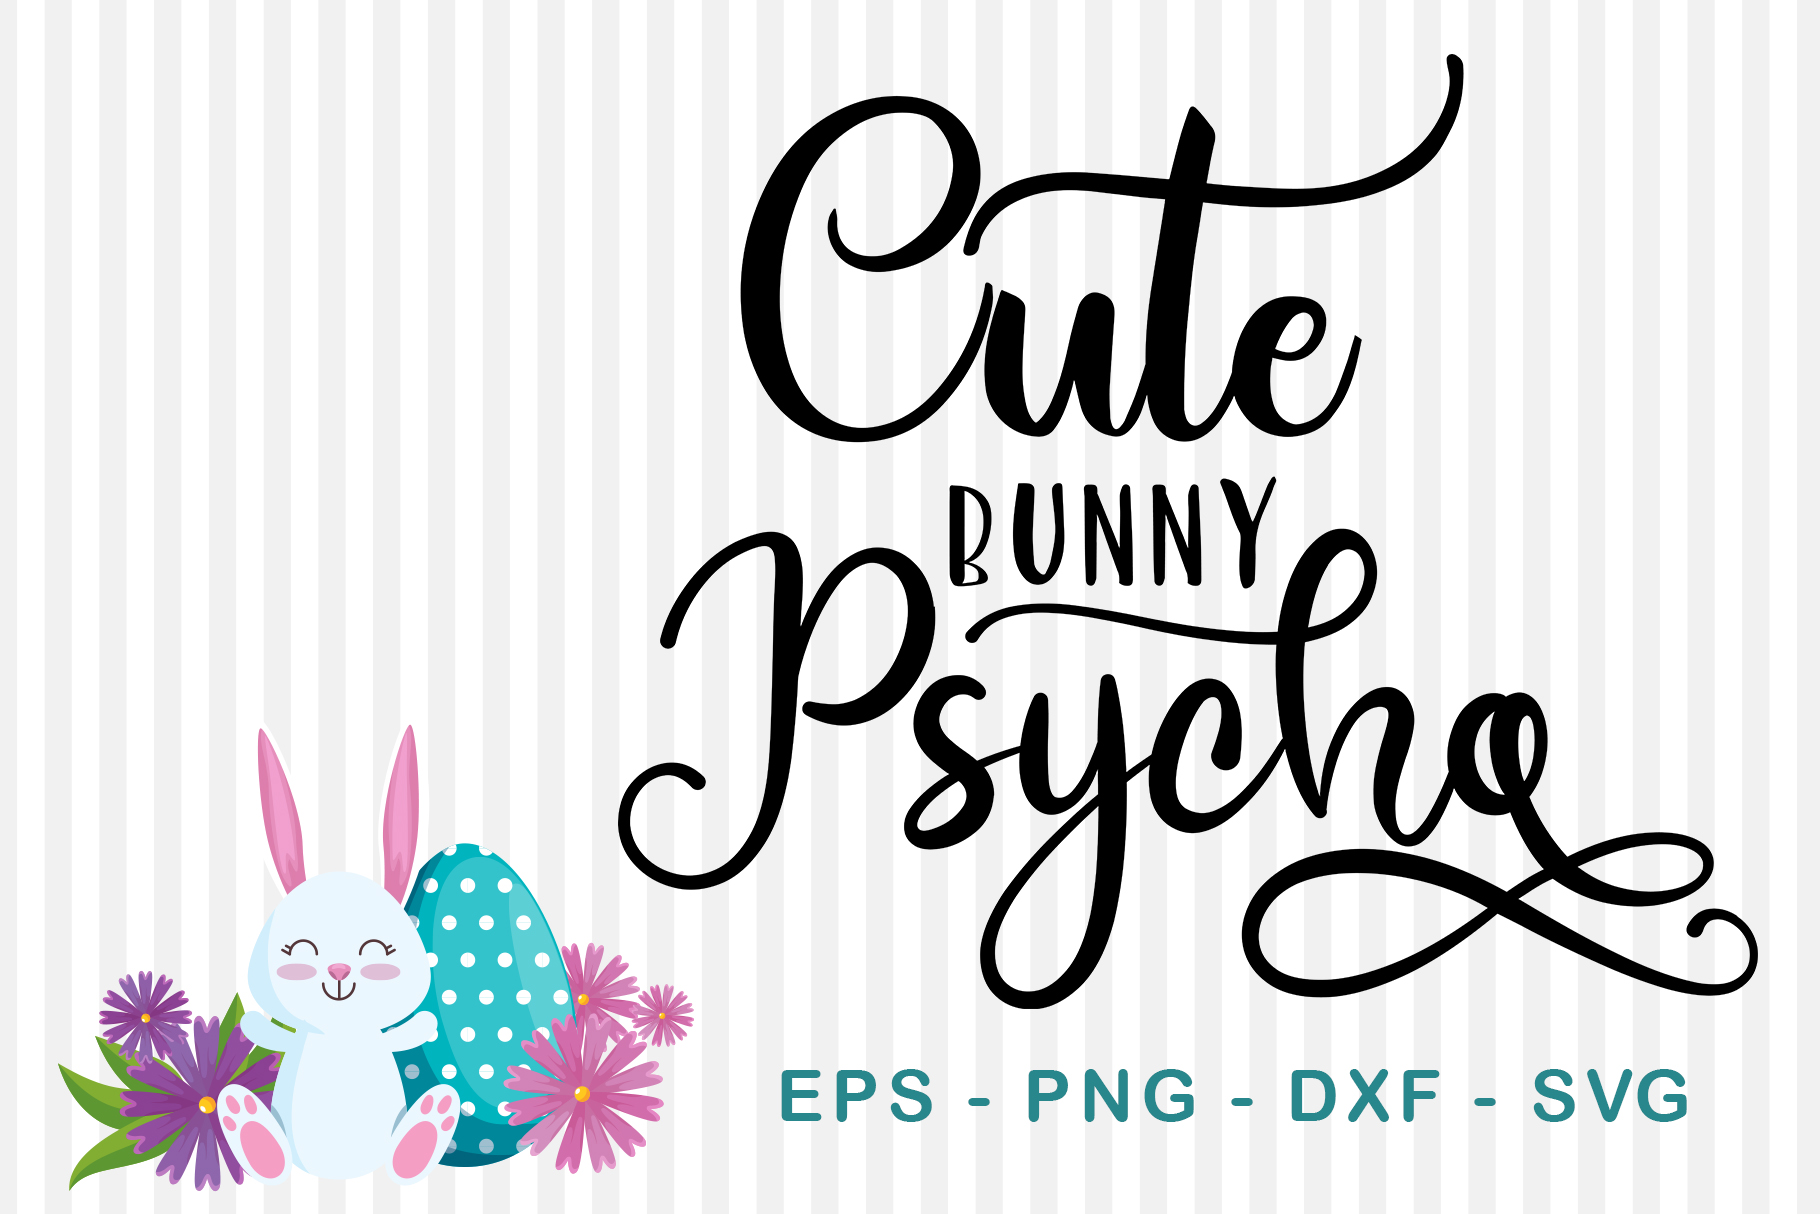 Download Free Cute Bunny Psycho Graphic By Sharon Dmstudio Creative Fabrica for Cricut Explore, Silhouette and other cutting machines.